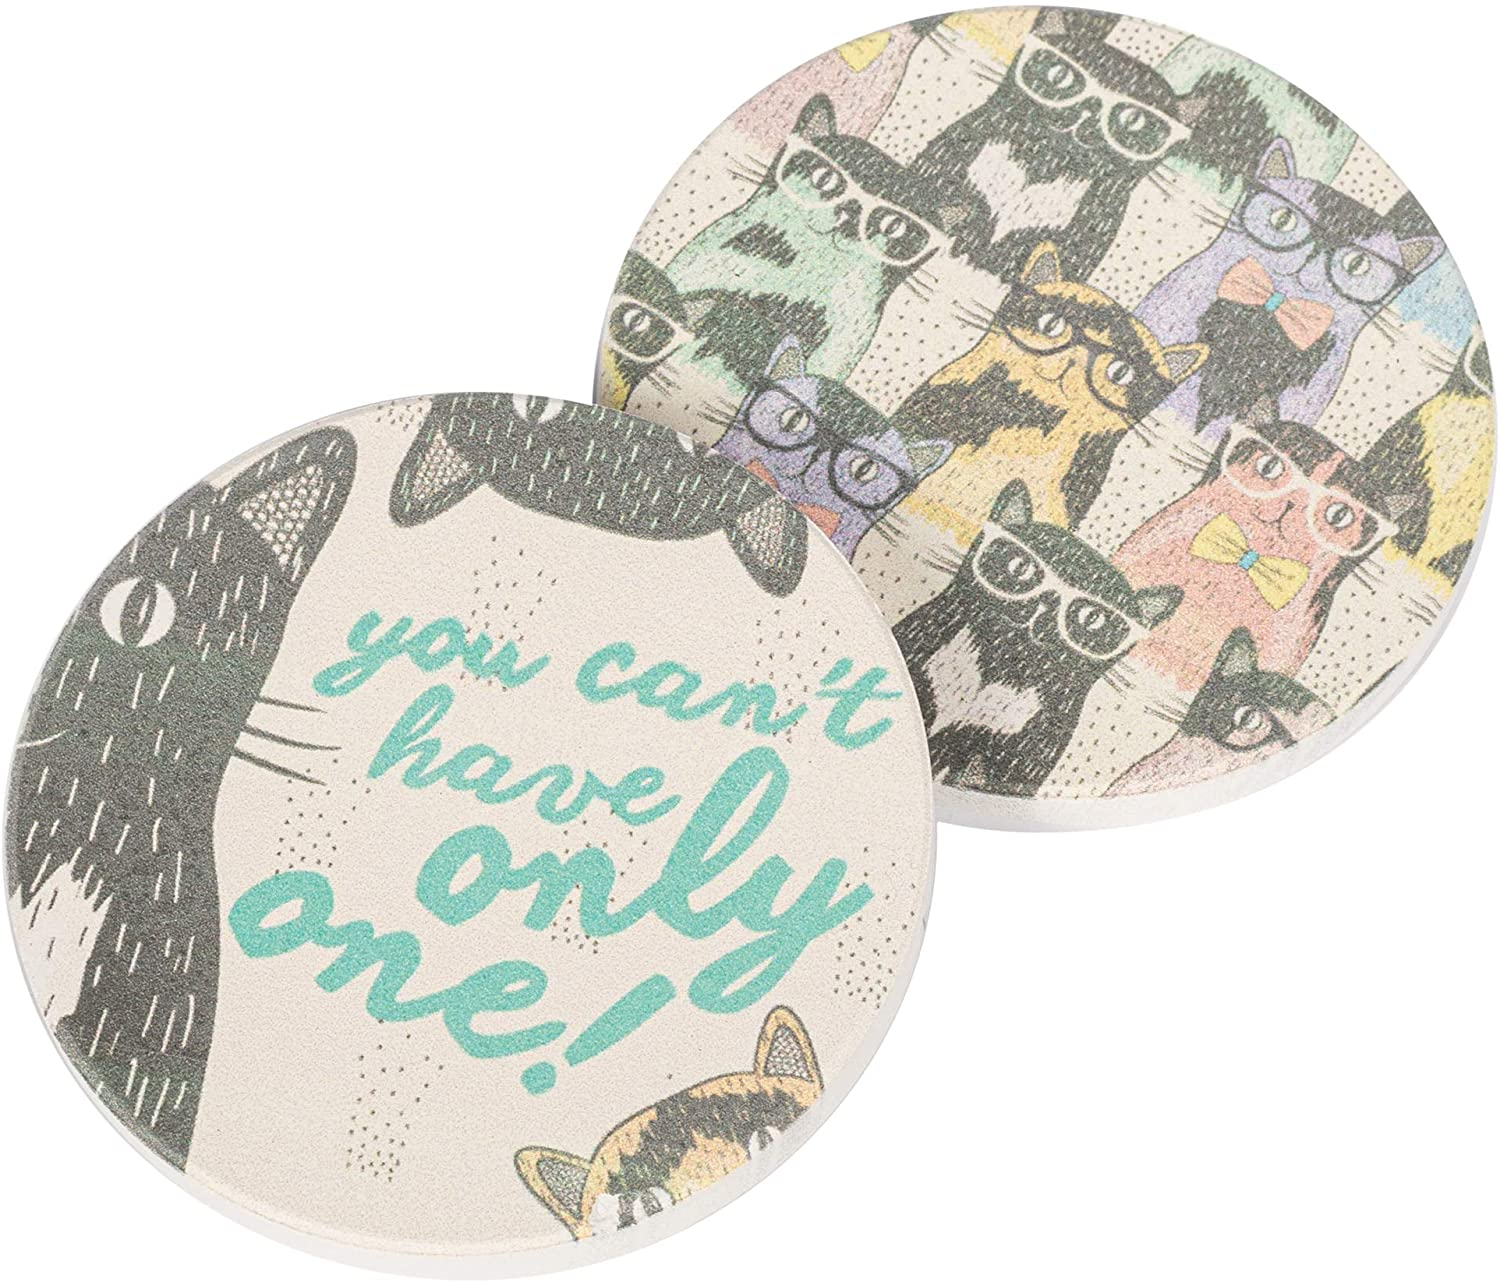 Cat Crazy, You Can't Only Have One 2.75 x 2.75 Absorbent Ceramic Car Coasters Pack of 2